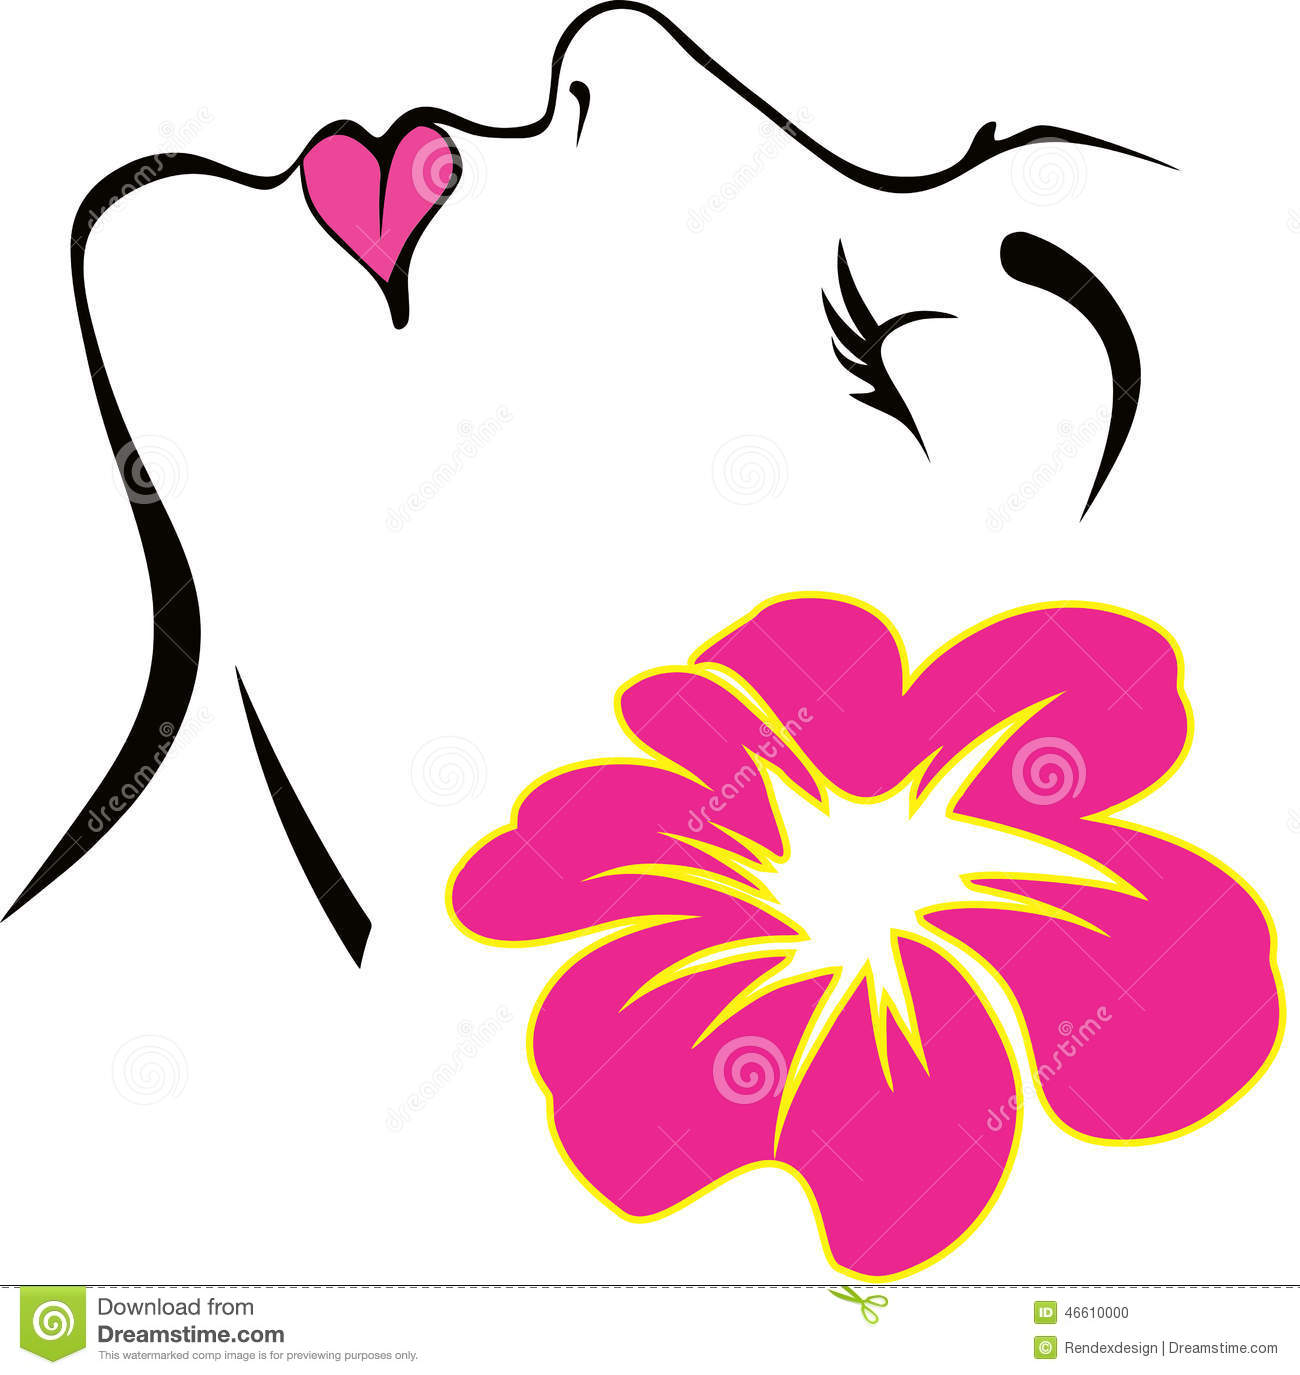 Woman Face With Pink Flower Vector Stock Vector - Image: 46610000